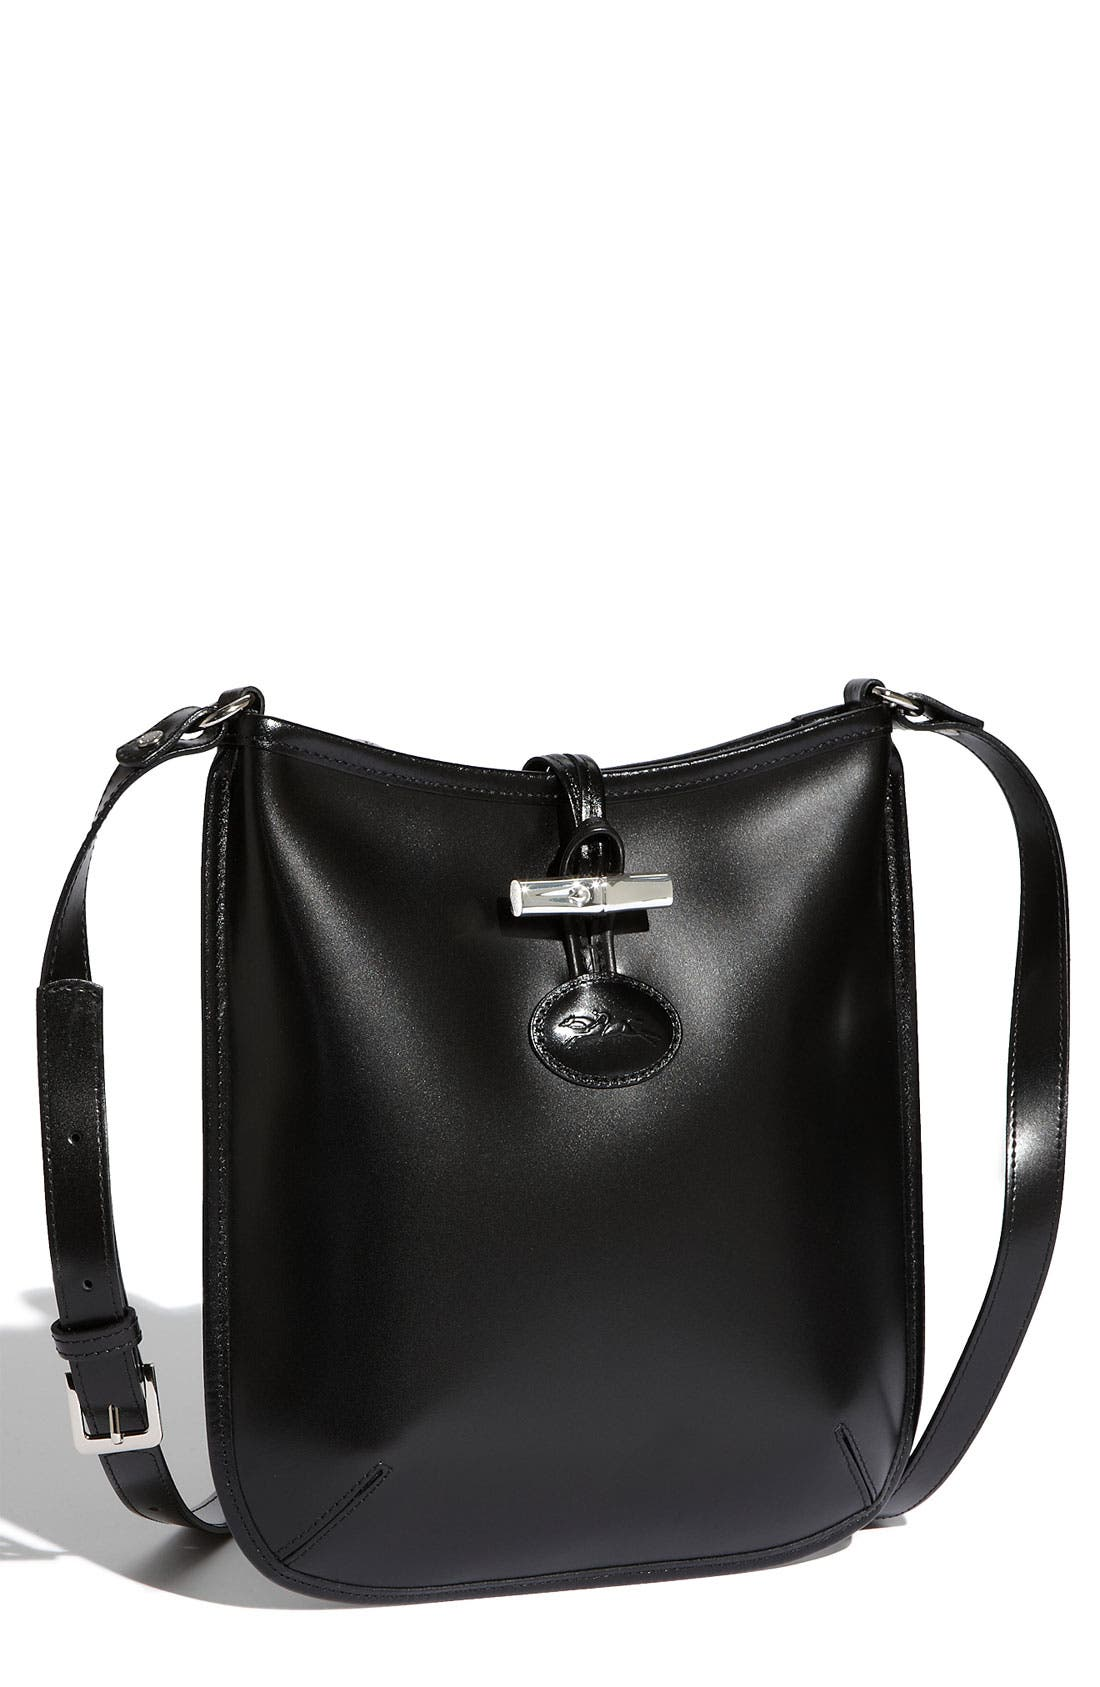 Main Image - Longchamp 'Roseau' Crossbody Bag